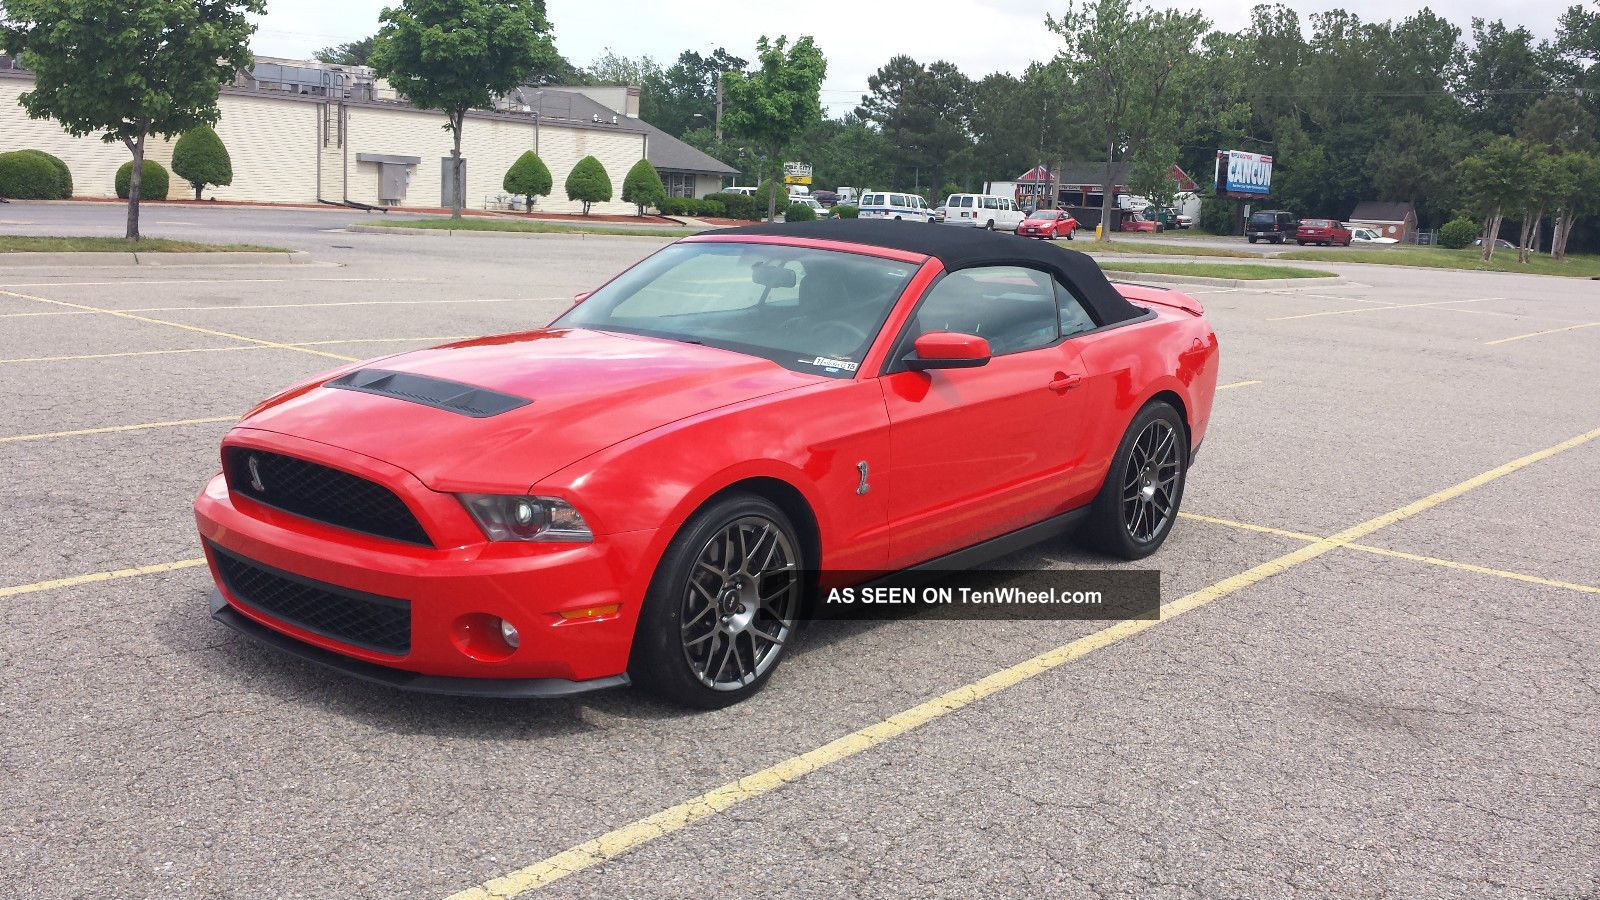 2012 ford mustang shelby gt500 race red convertible 5 4l supercharged v8. Black Bedroom Furniture Sets. Home Design Ideas